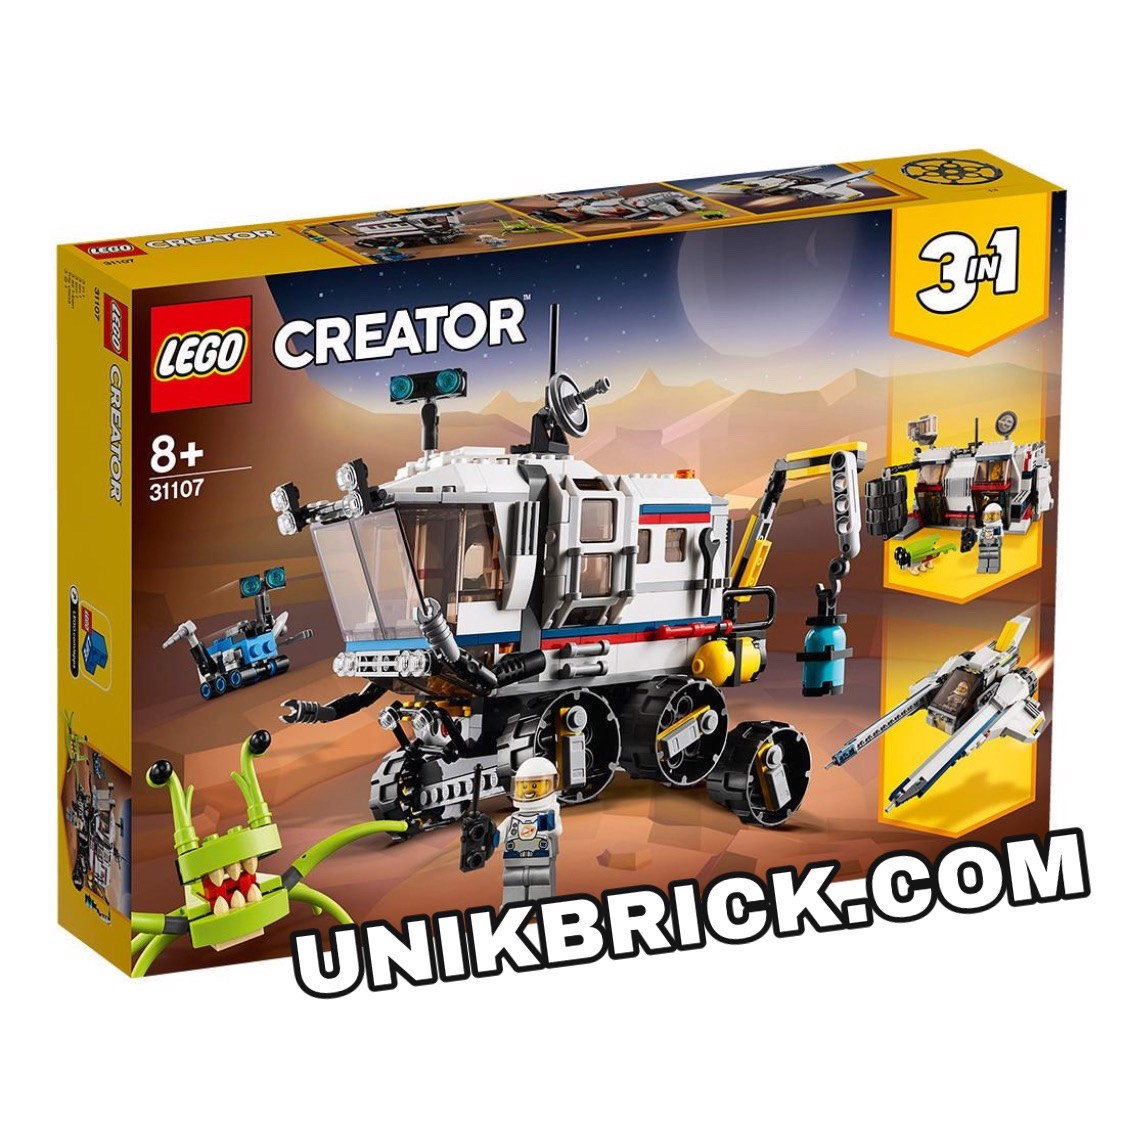 [HÀNG ĐẶT/ ORDER] LEGO Creator 31107 Space Rover Explorer 3 IN 1